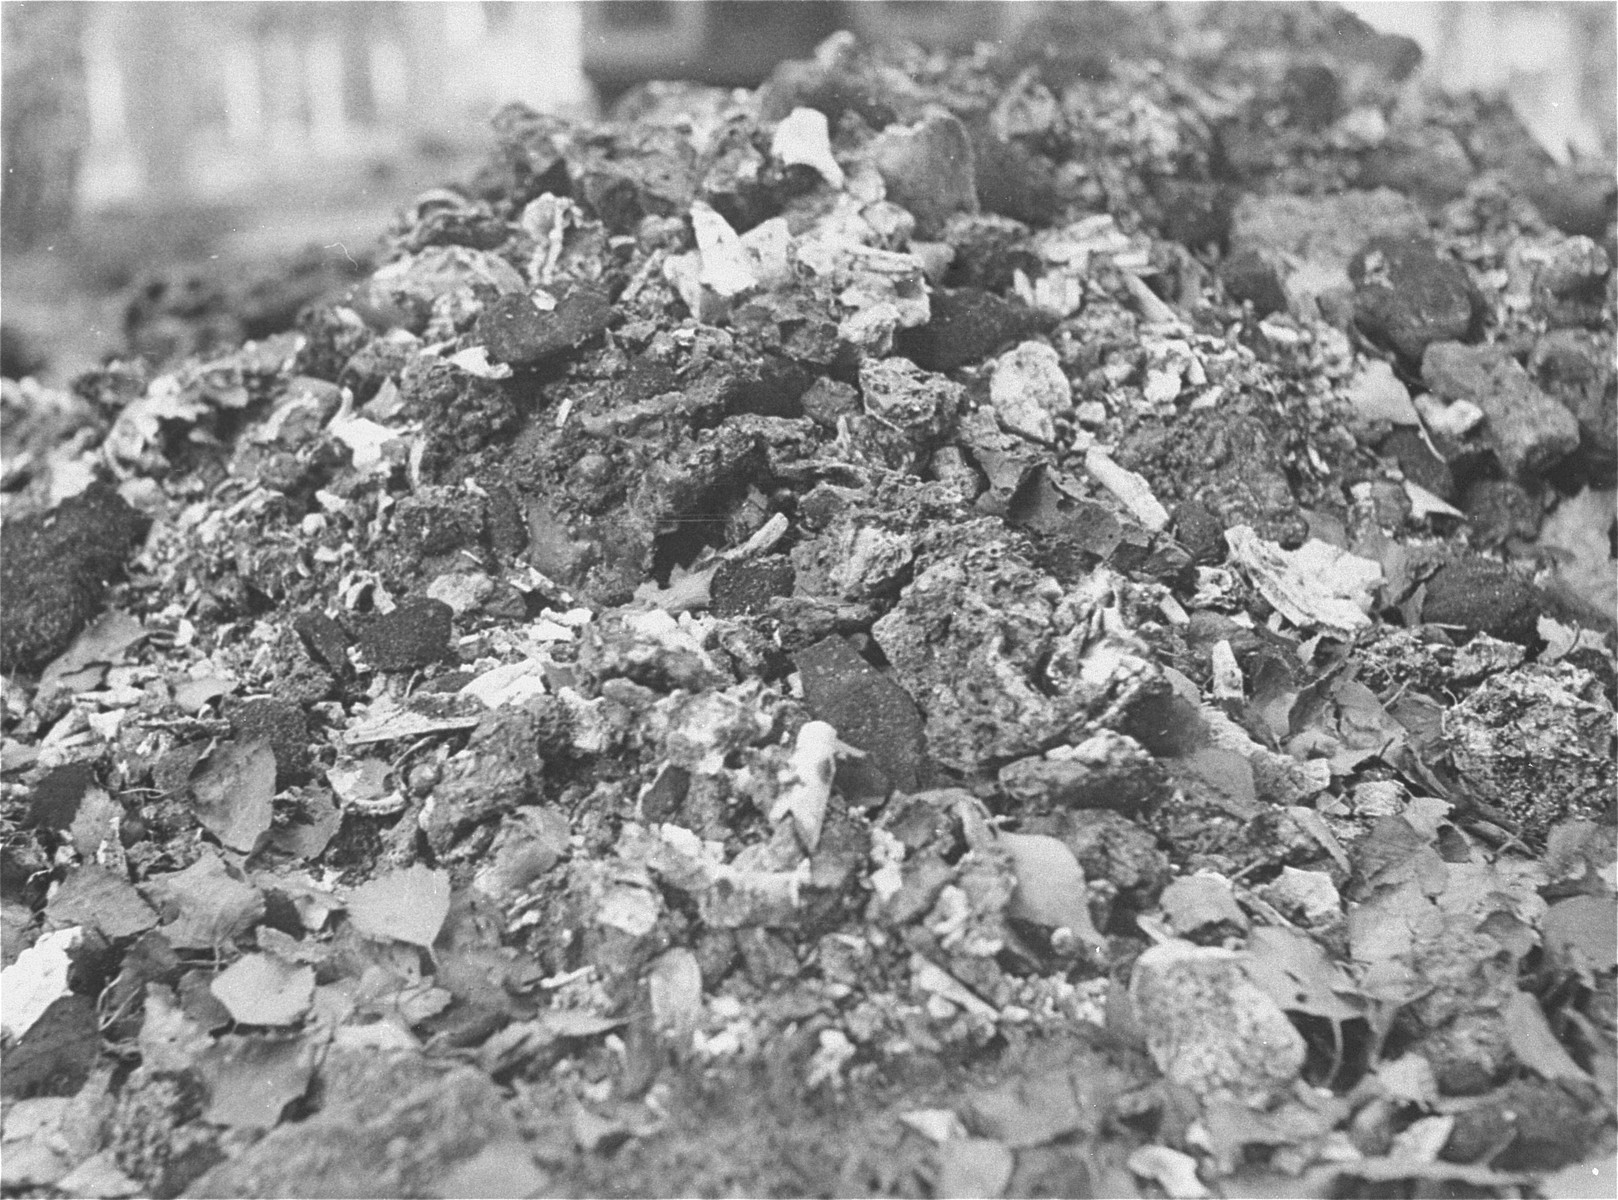 A pile of human remains and bones found near an incinerator in Vught by the Allies.